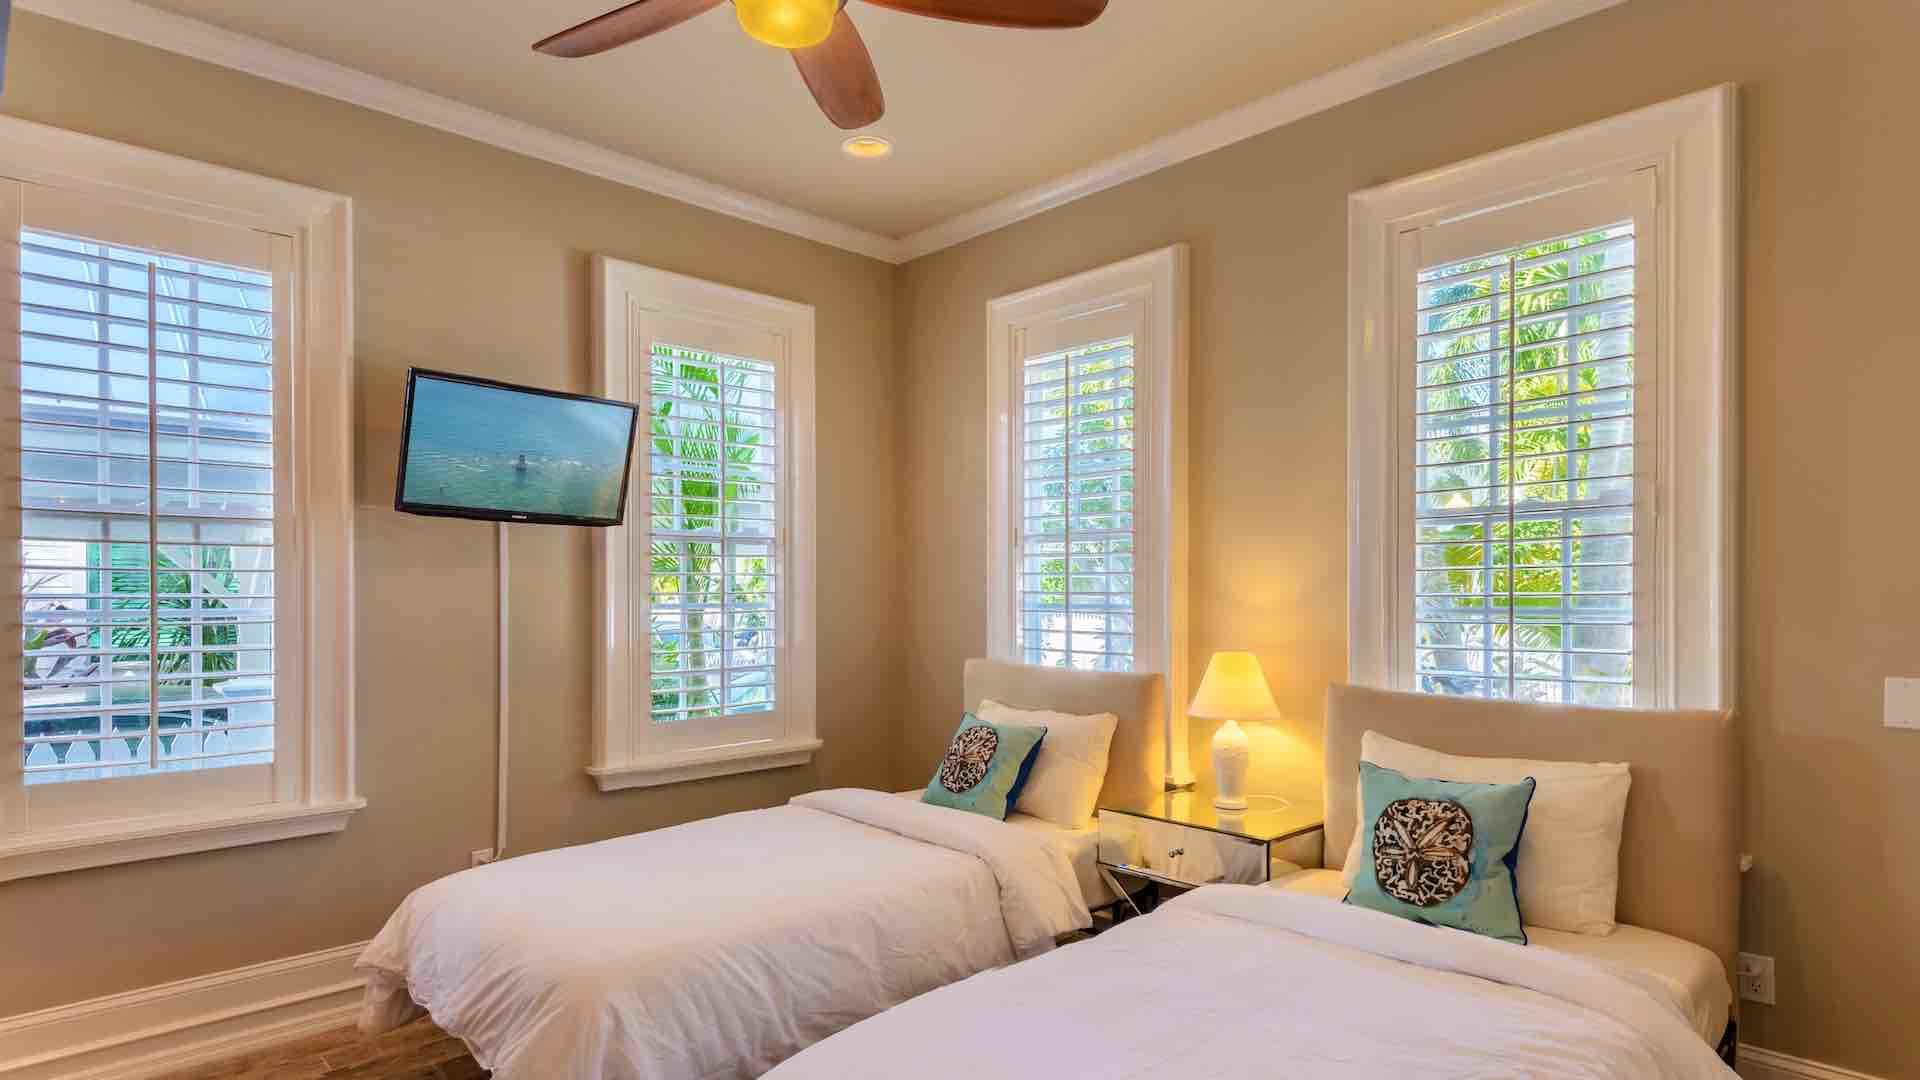 The first bedroom is on the first floor, with flat screen TV and overhead fan...